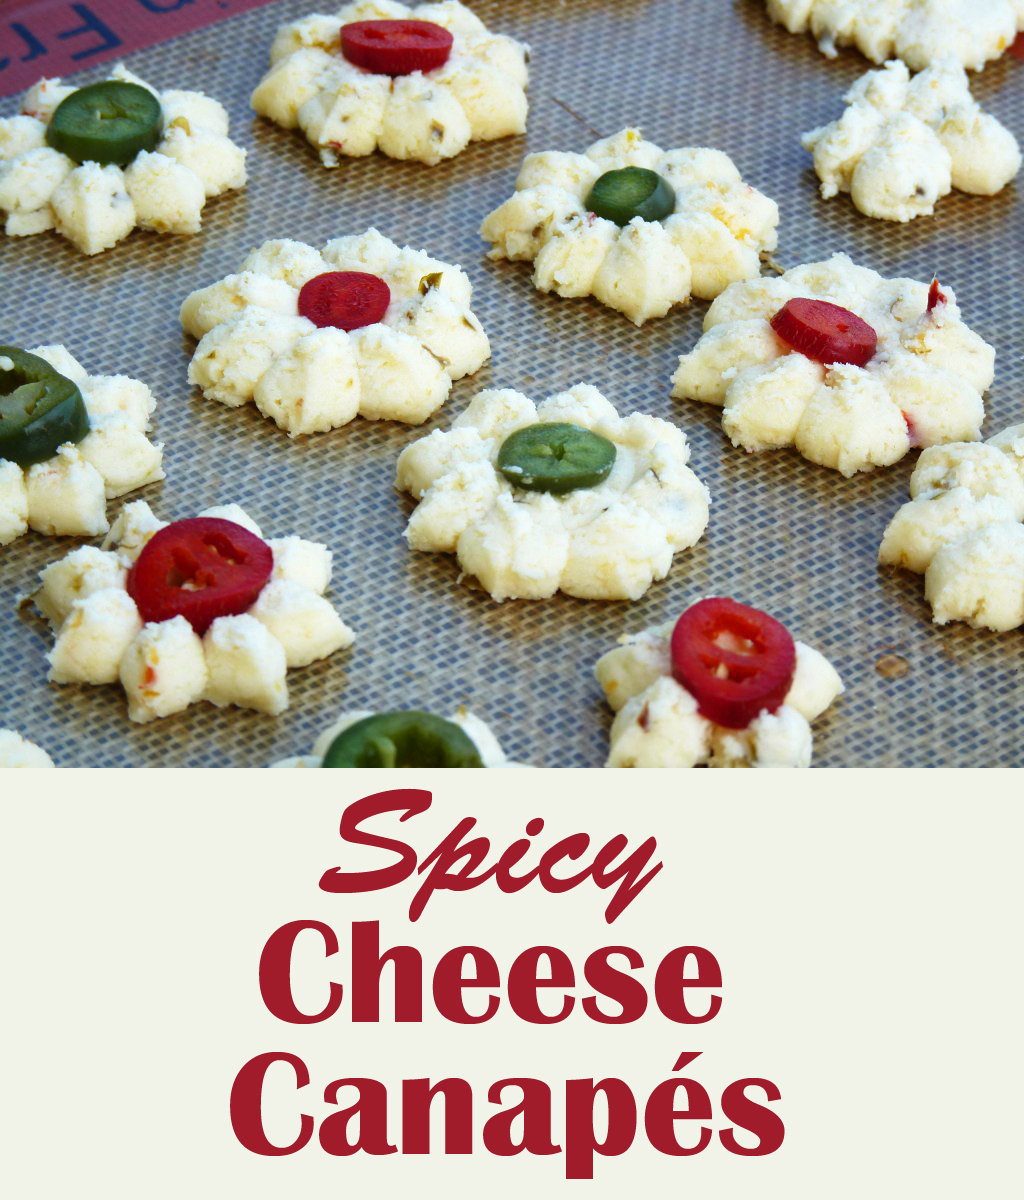 Spicy cheese canap s sweet t makes three for Cheese canape ideas